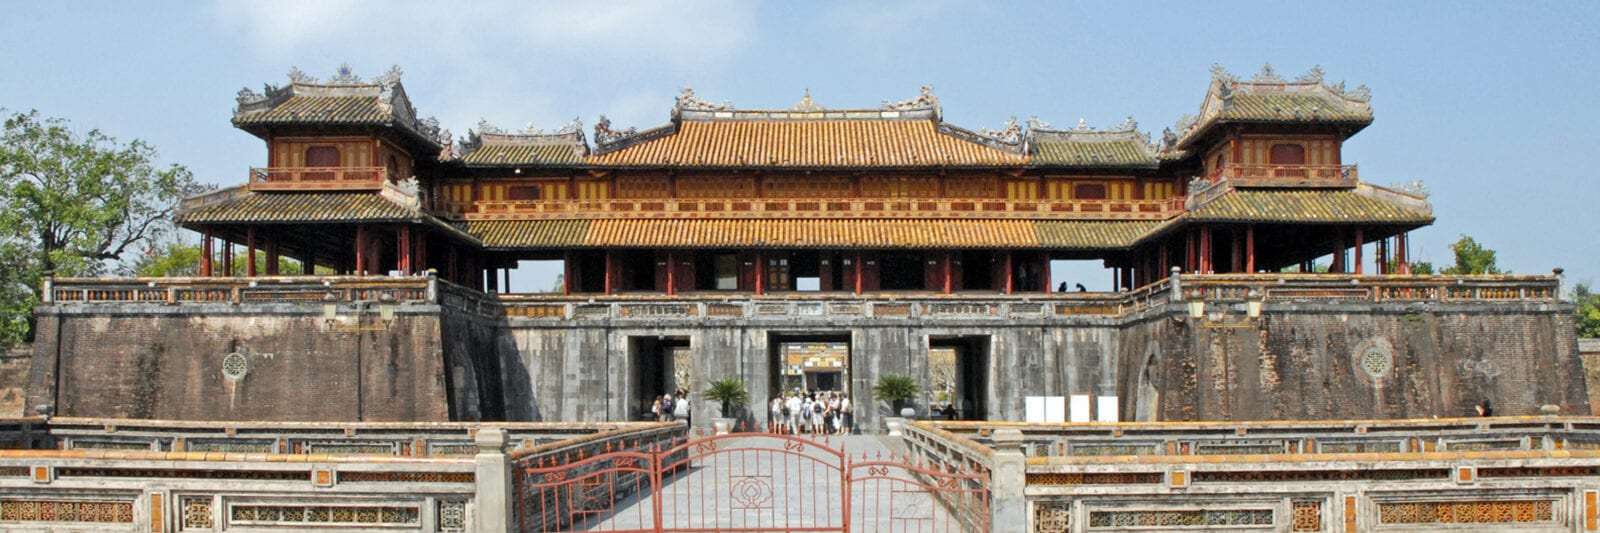 Image of the Imperial City in Hue, Vietnam